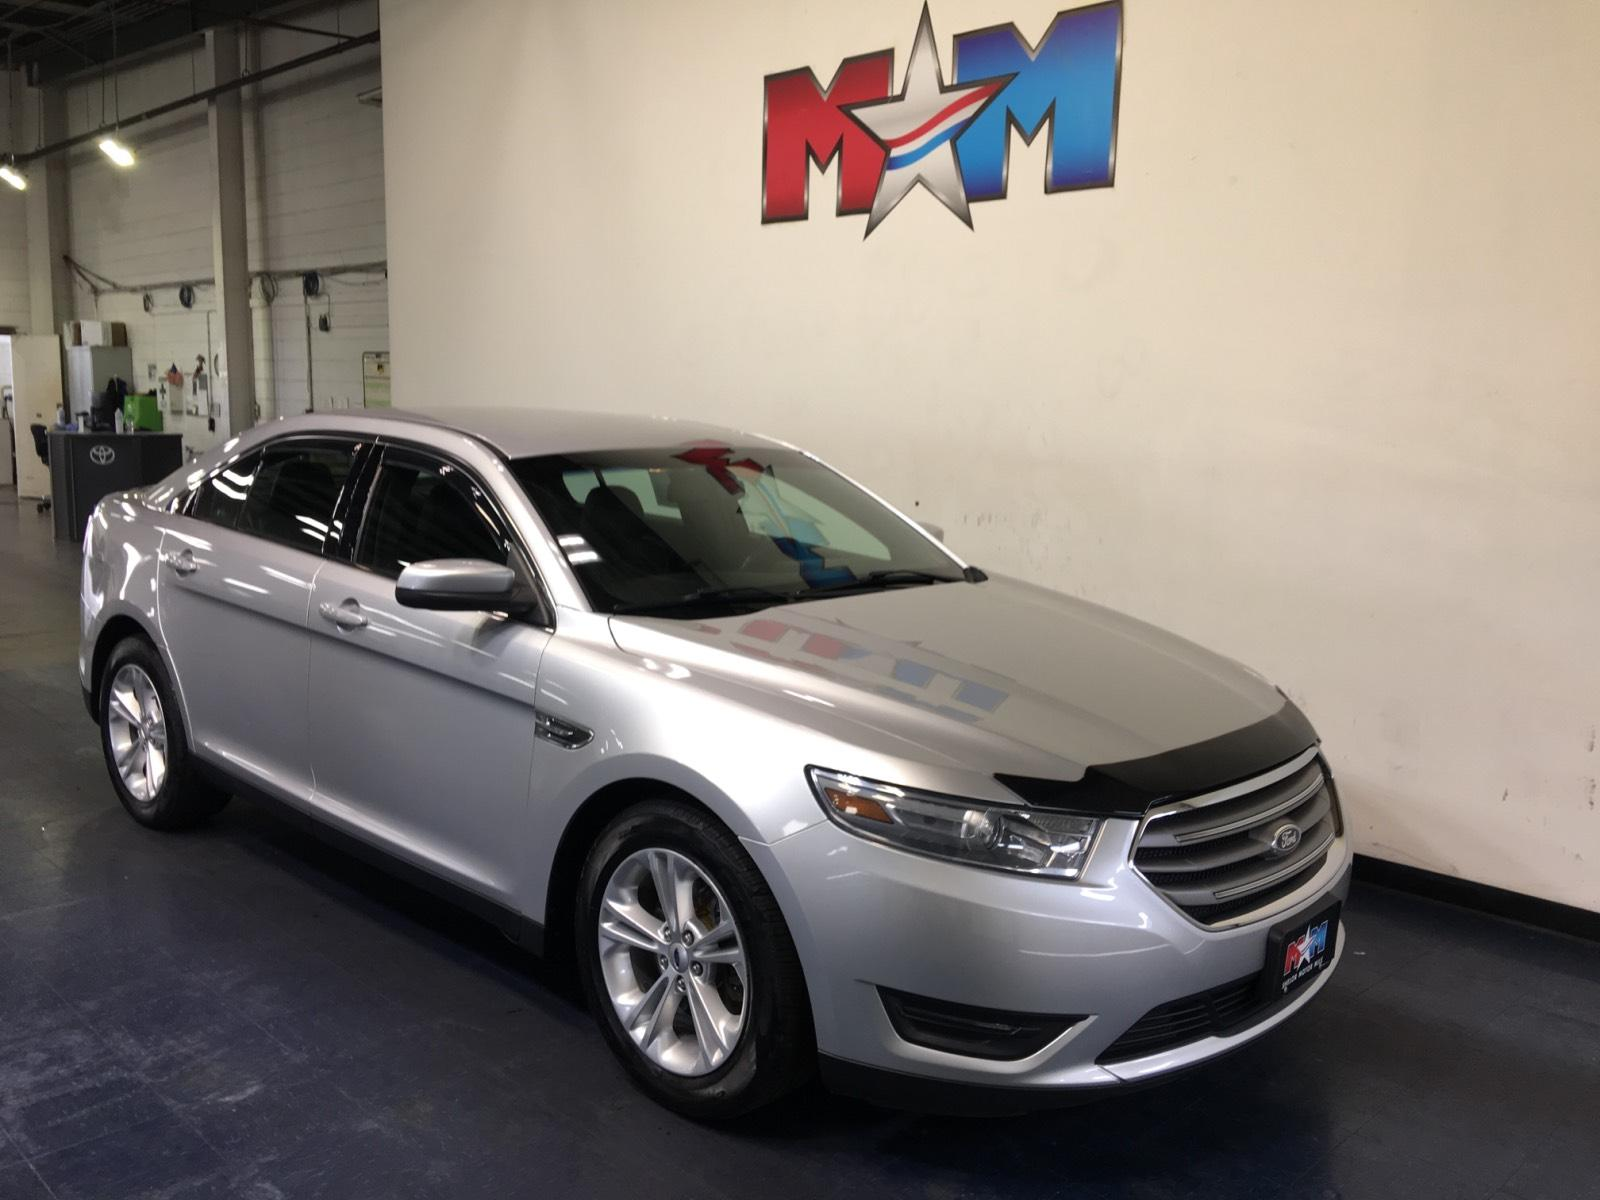 Pre-Owned 2014 Ford Taurus 4dr Sdn SEL AWD